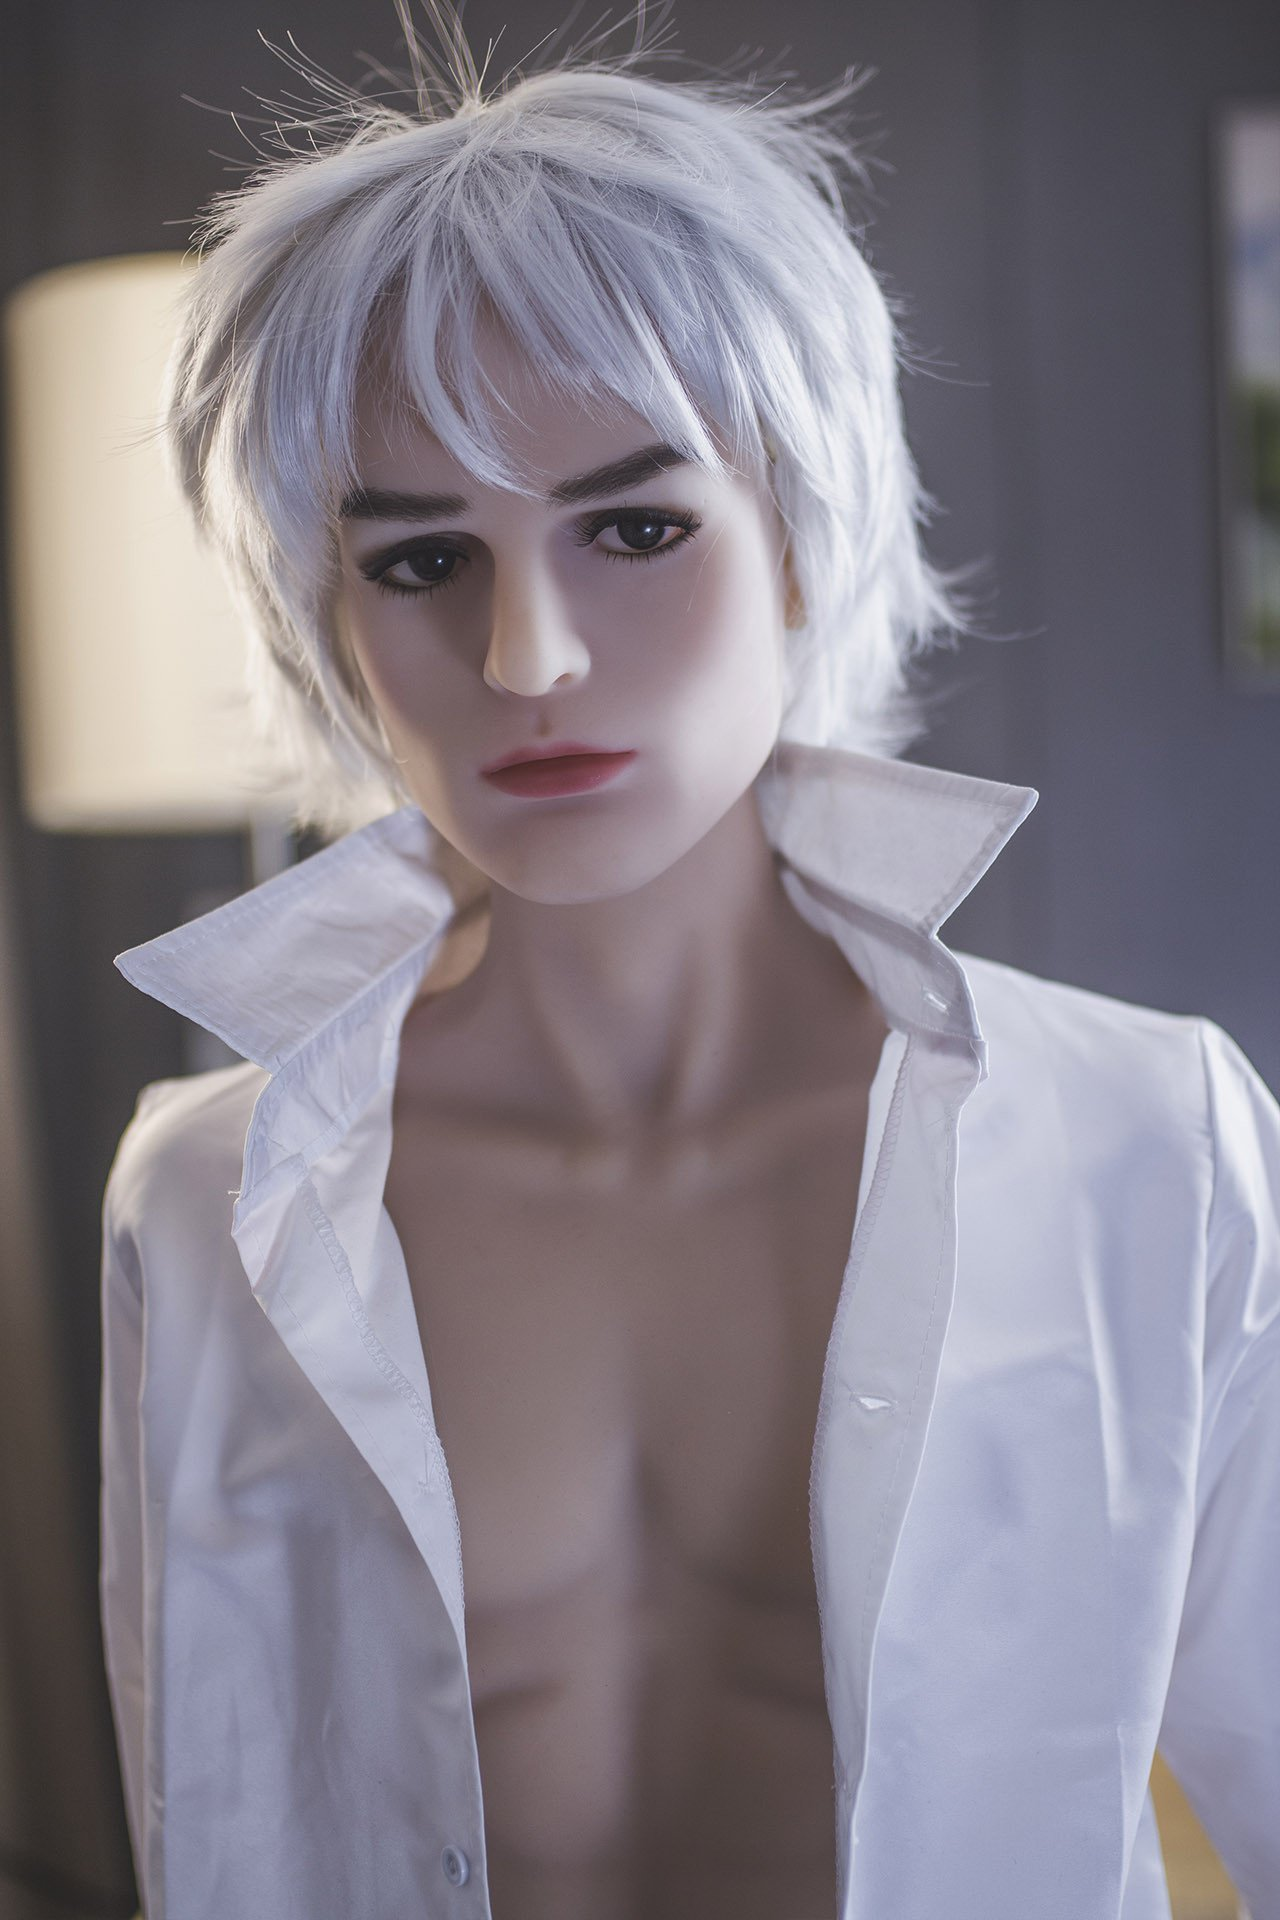 Male sex doll with striking features posing